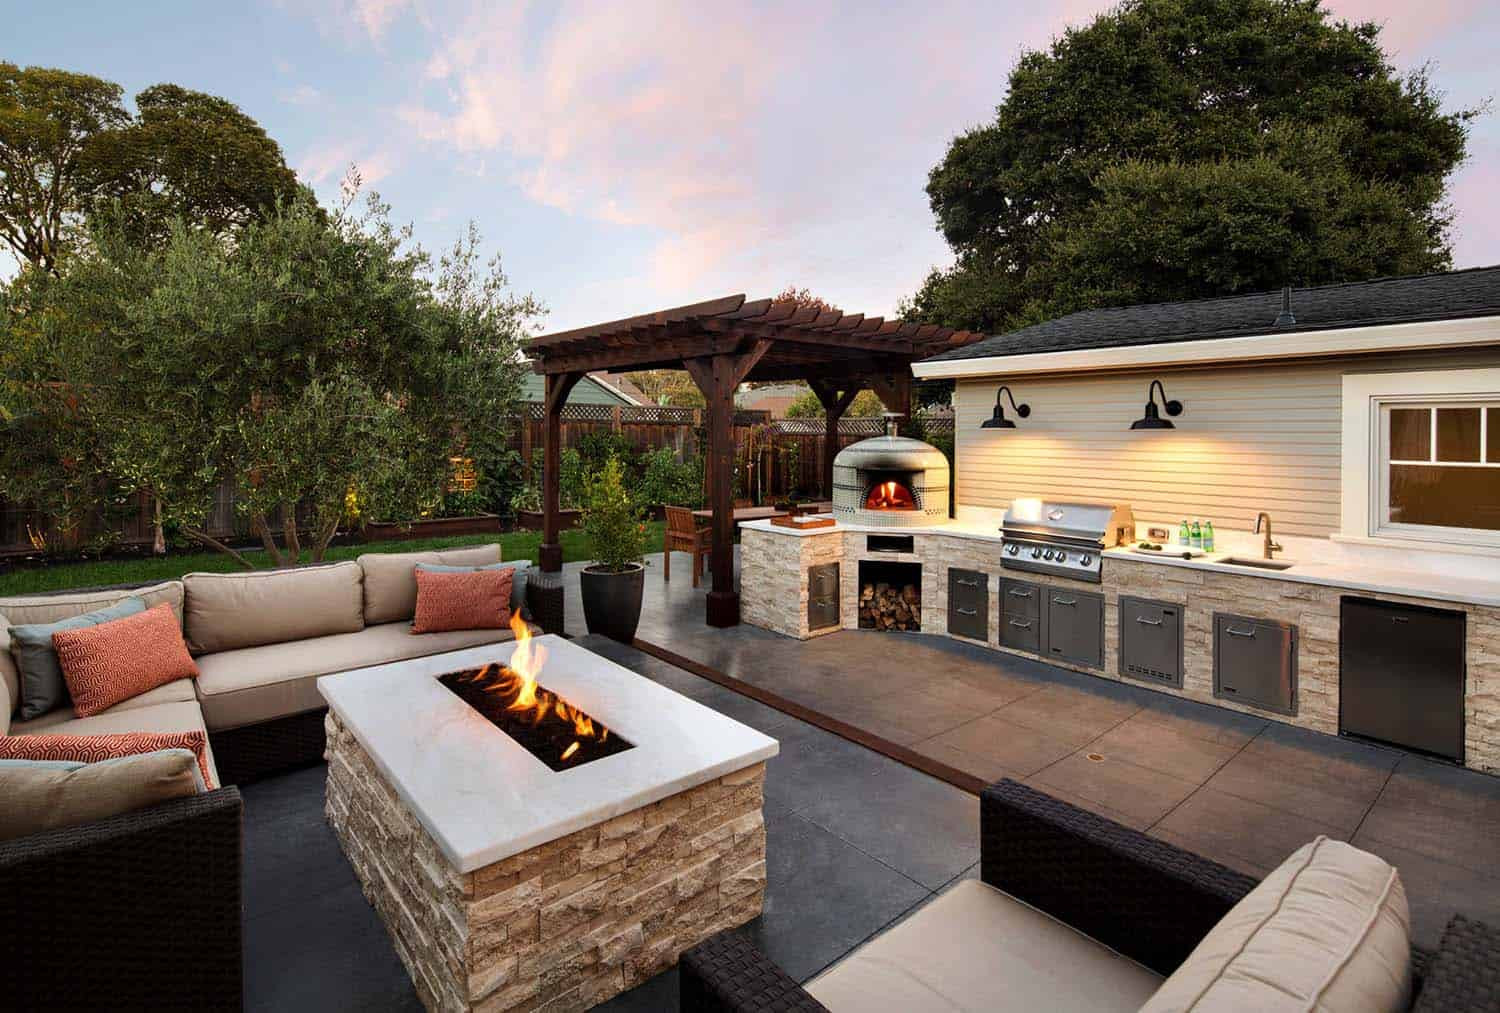 Outdoor Living Space Ideas  33 Fabulous Ideas For Creating Beautiful Outdoor Living Spaces